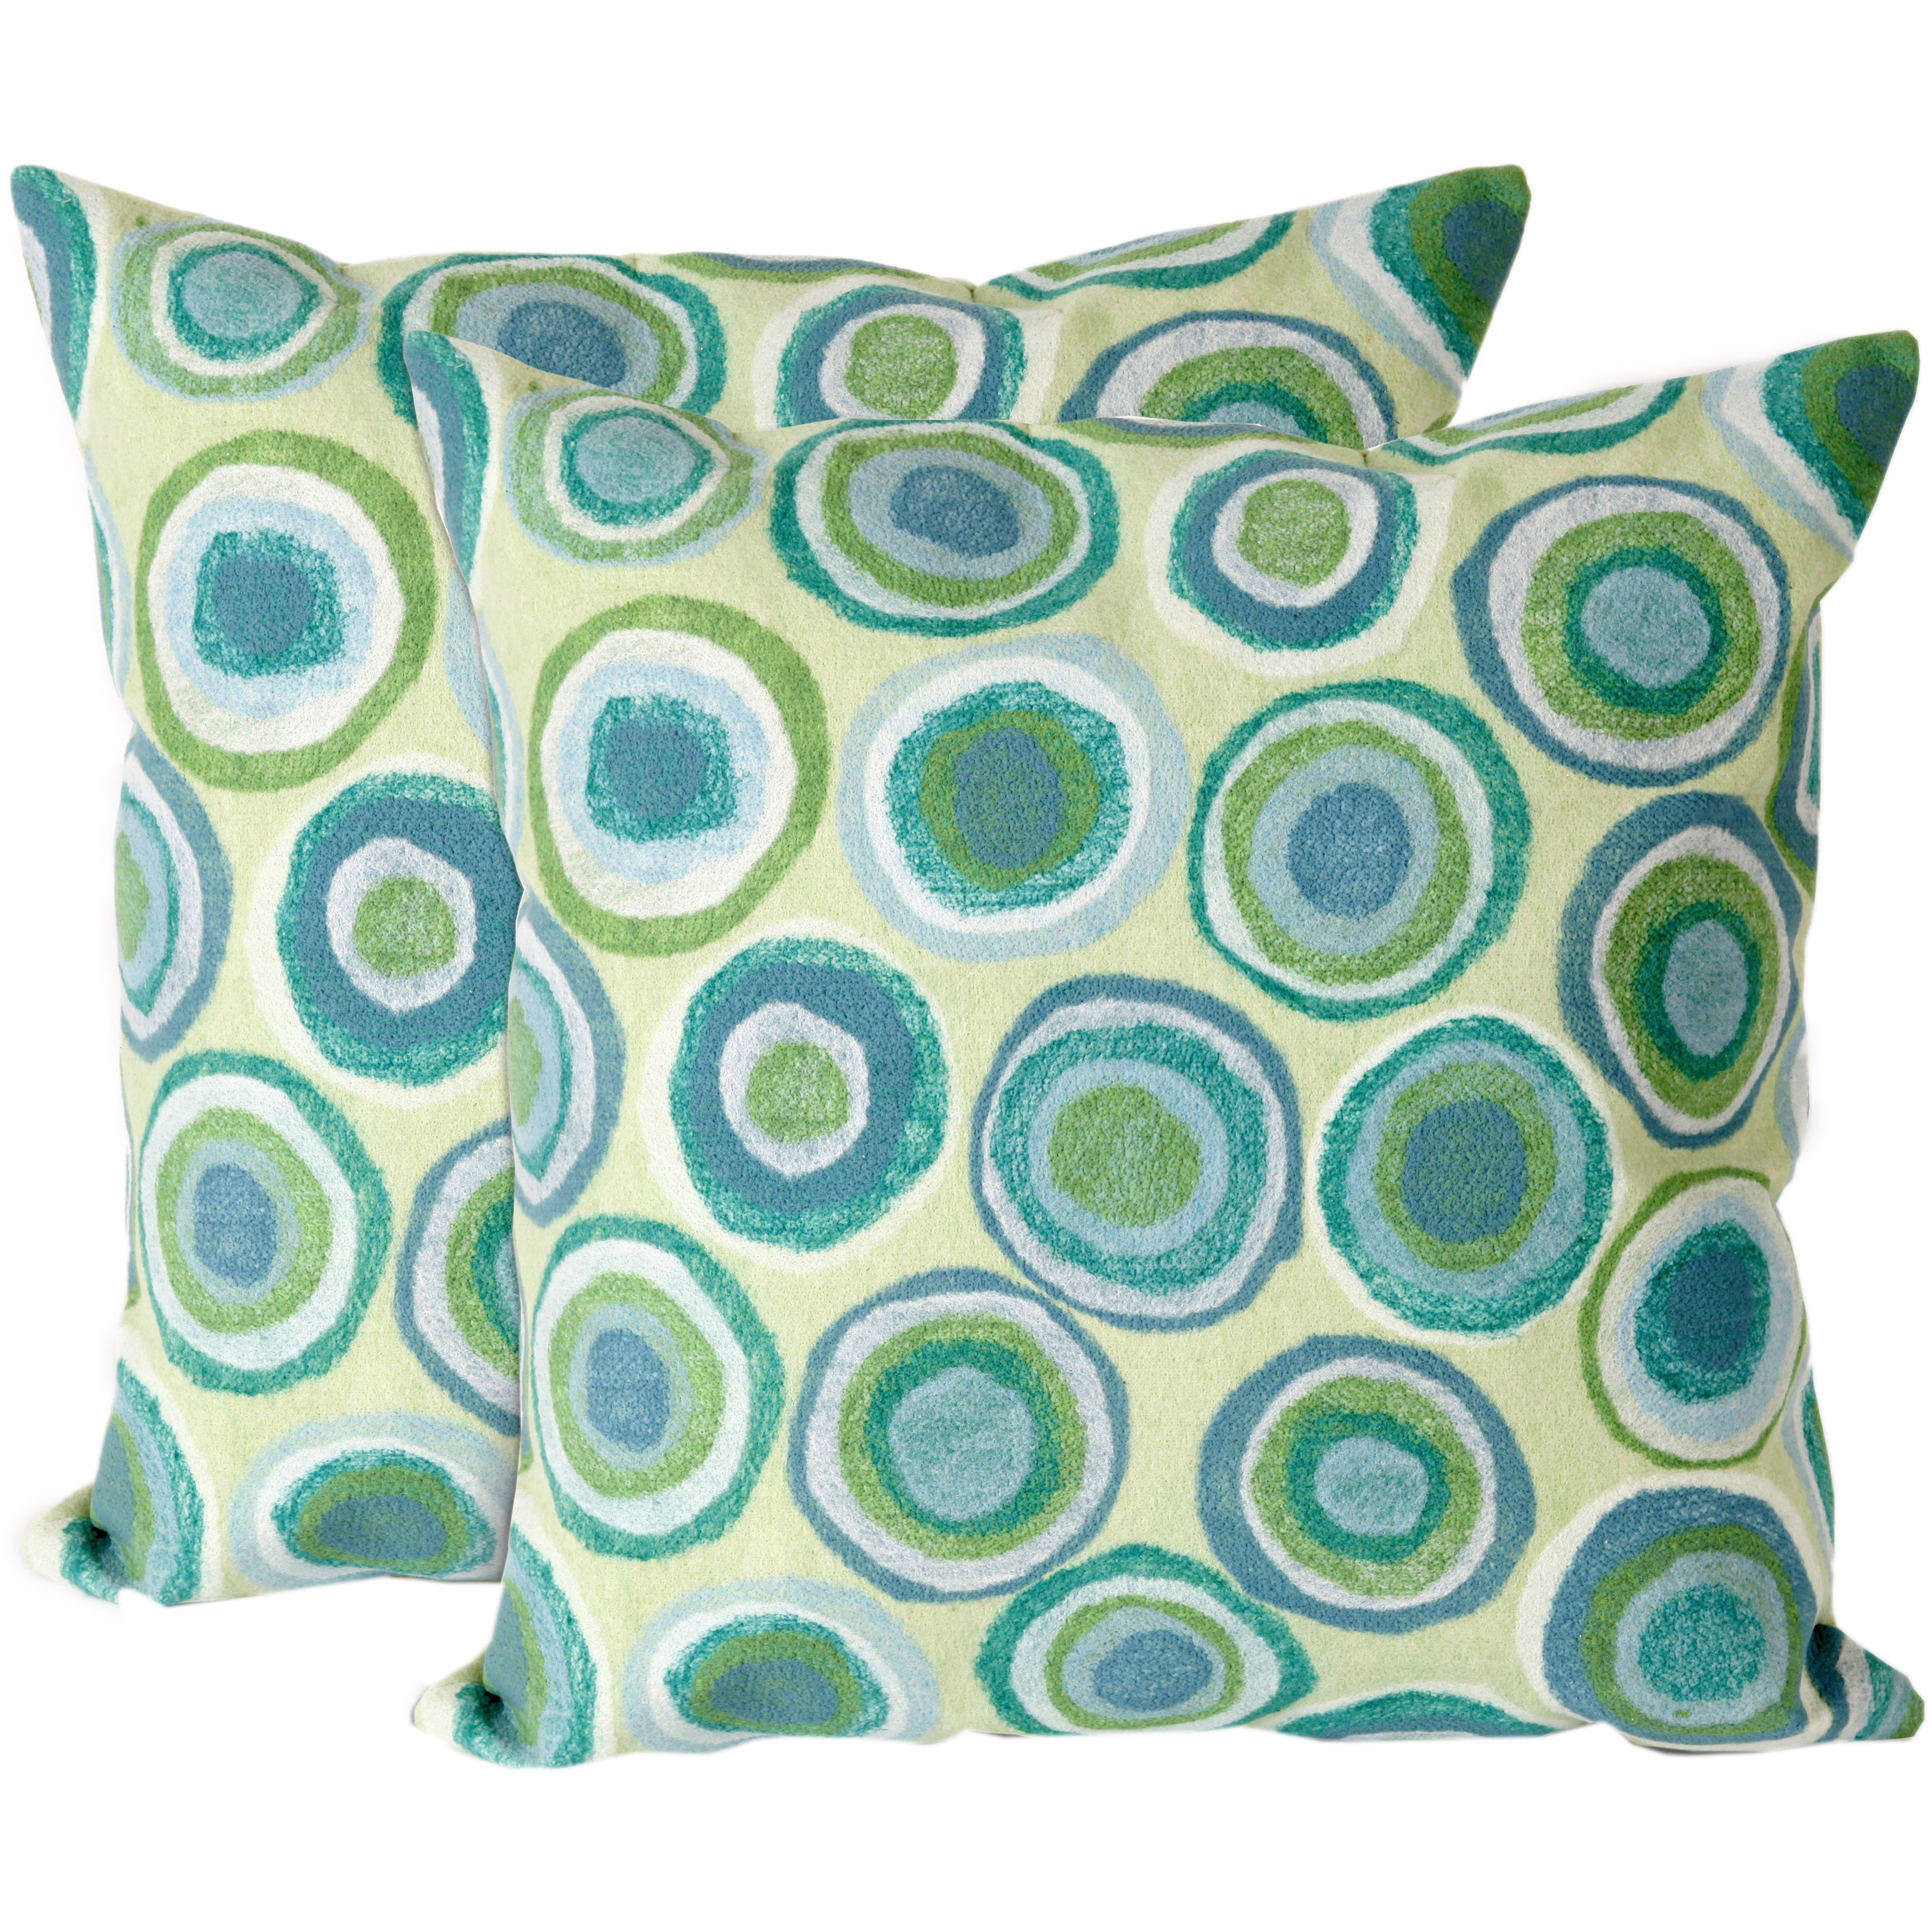 Pebbles 20-inch Throw Pillow (Set of 2) (Pebbles In/Outdoor 20 Sq Pillow Set)